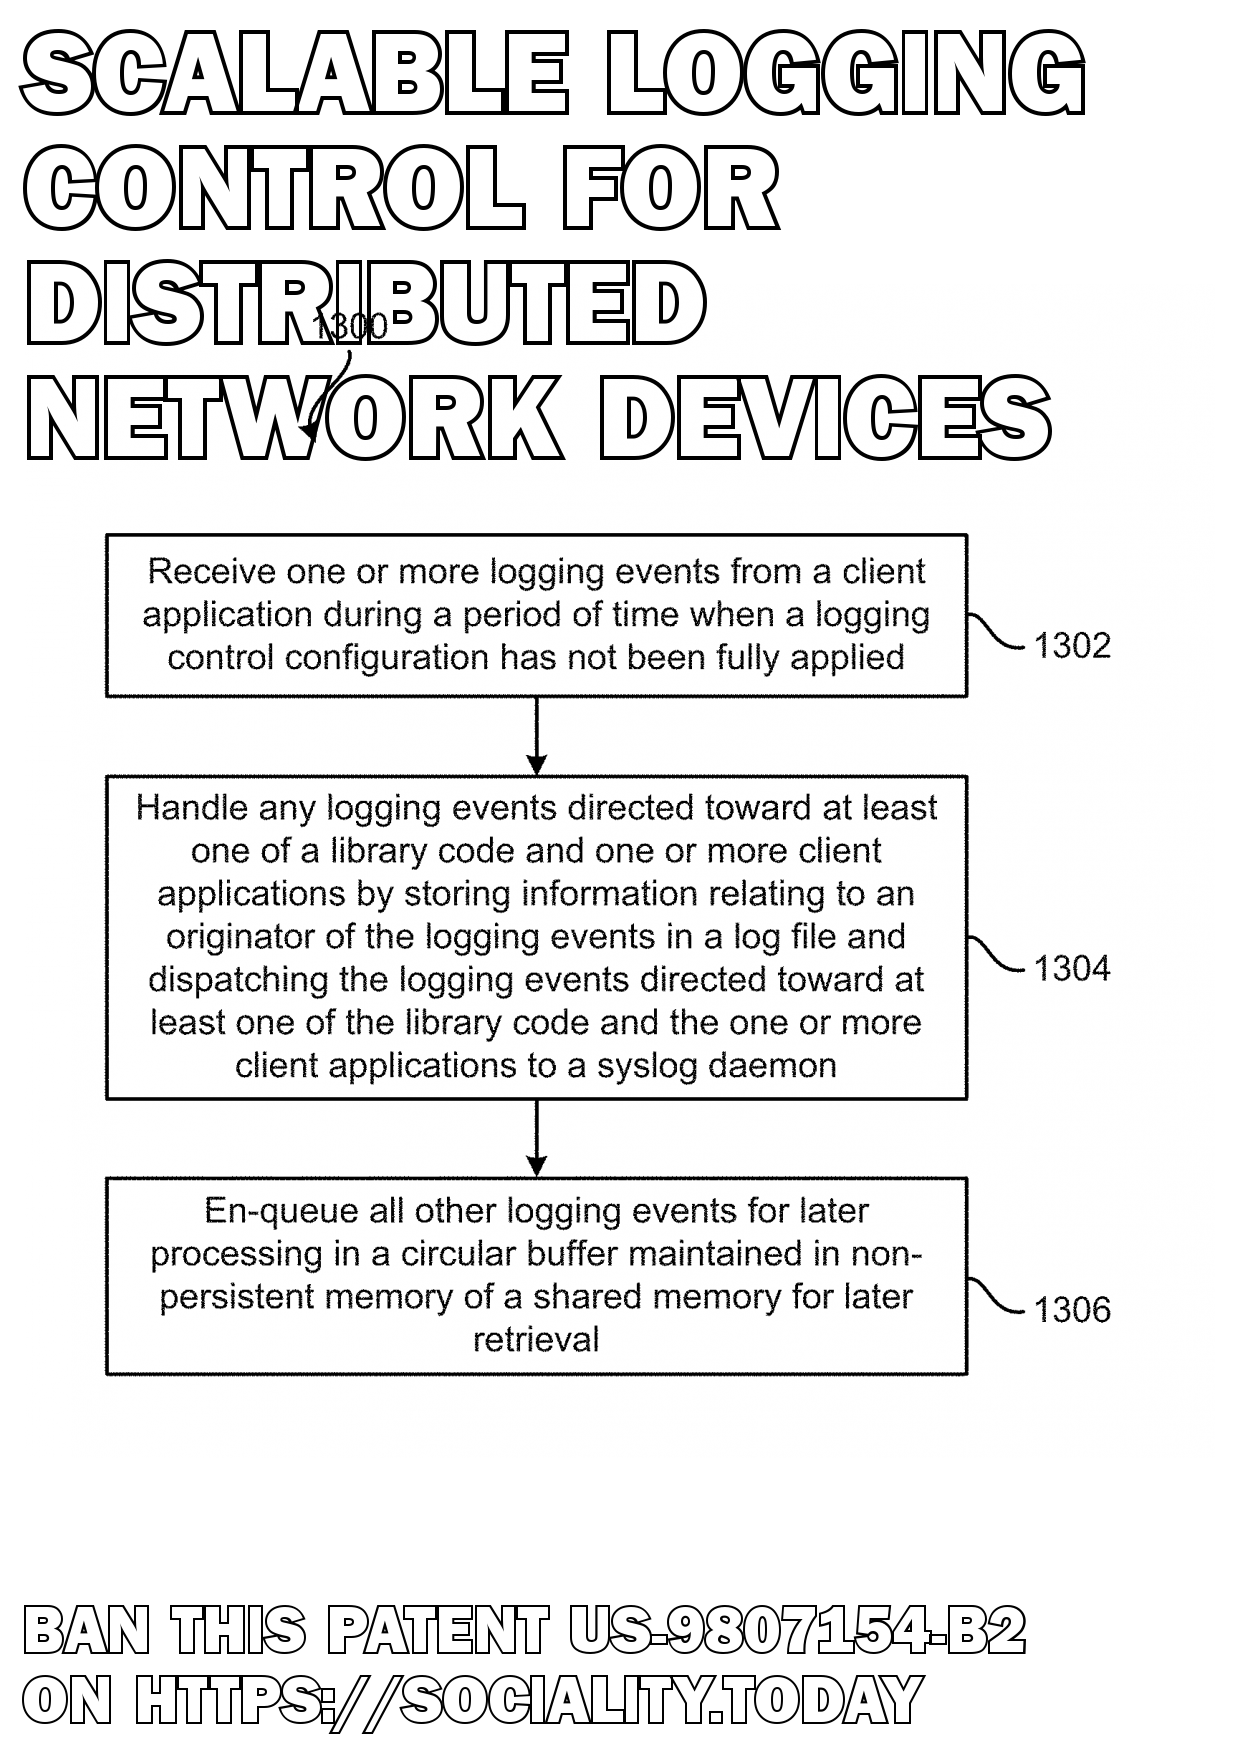 SOCIALITY - Scalable Logging Control For Distributed Network Devices